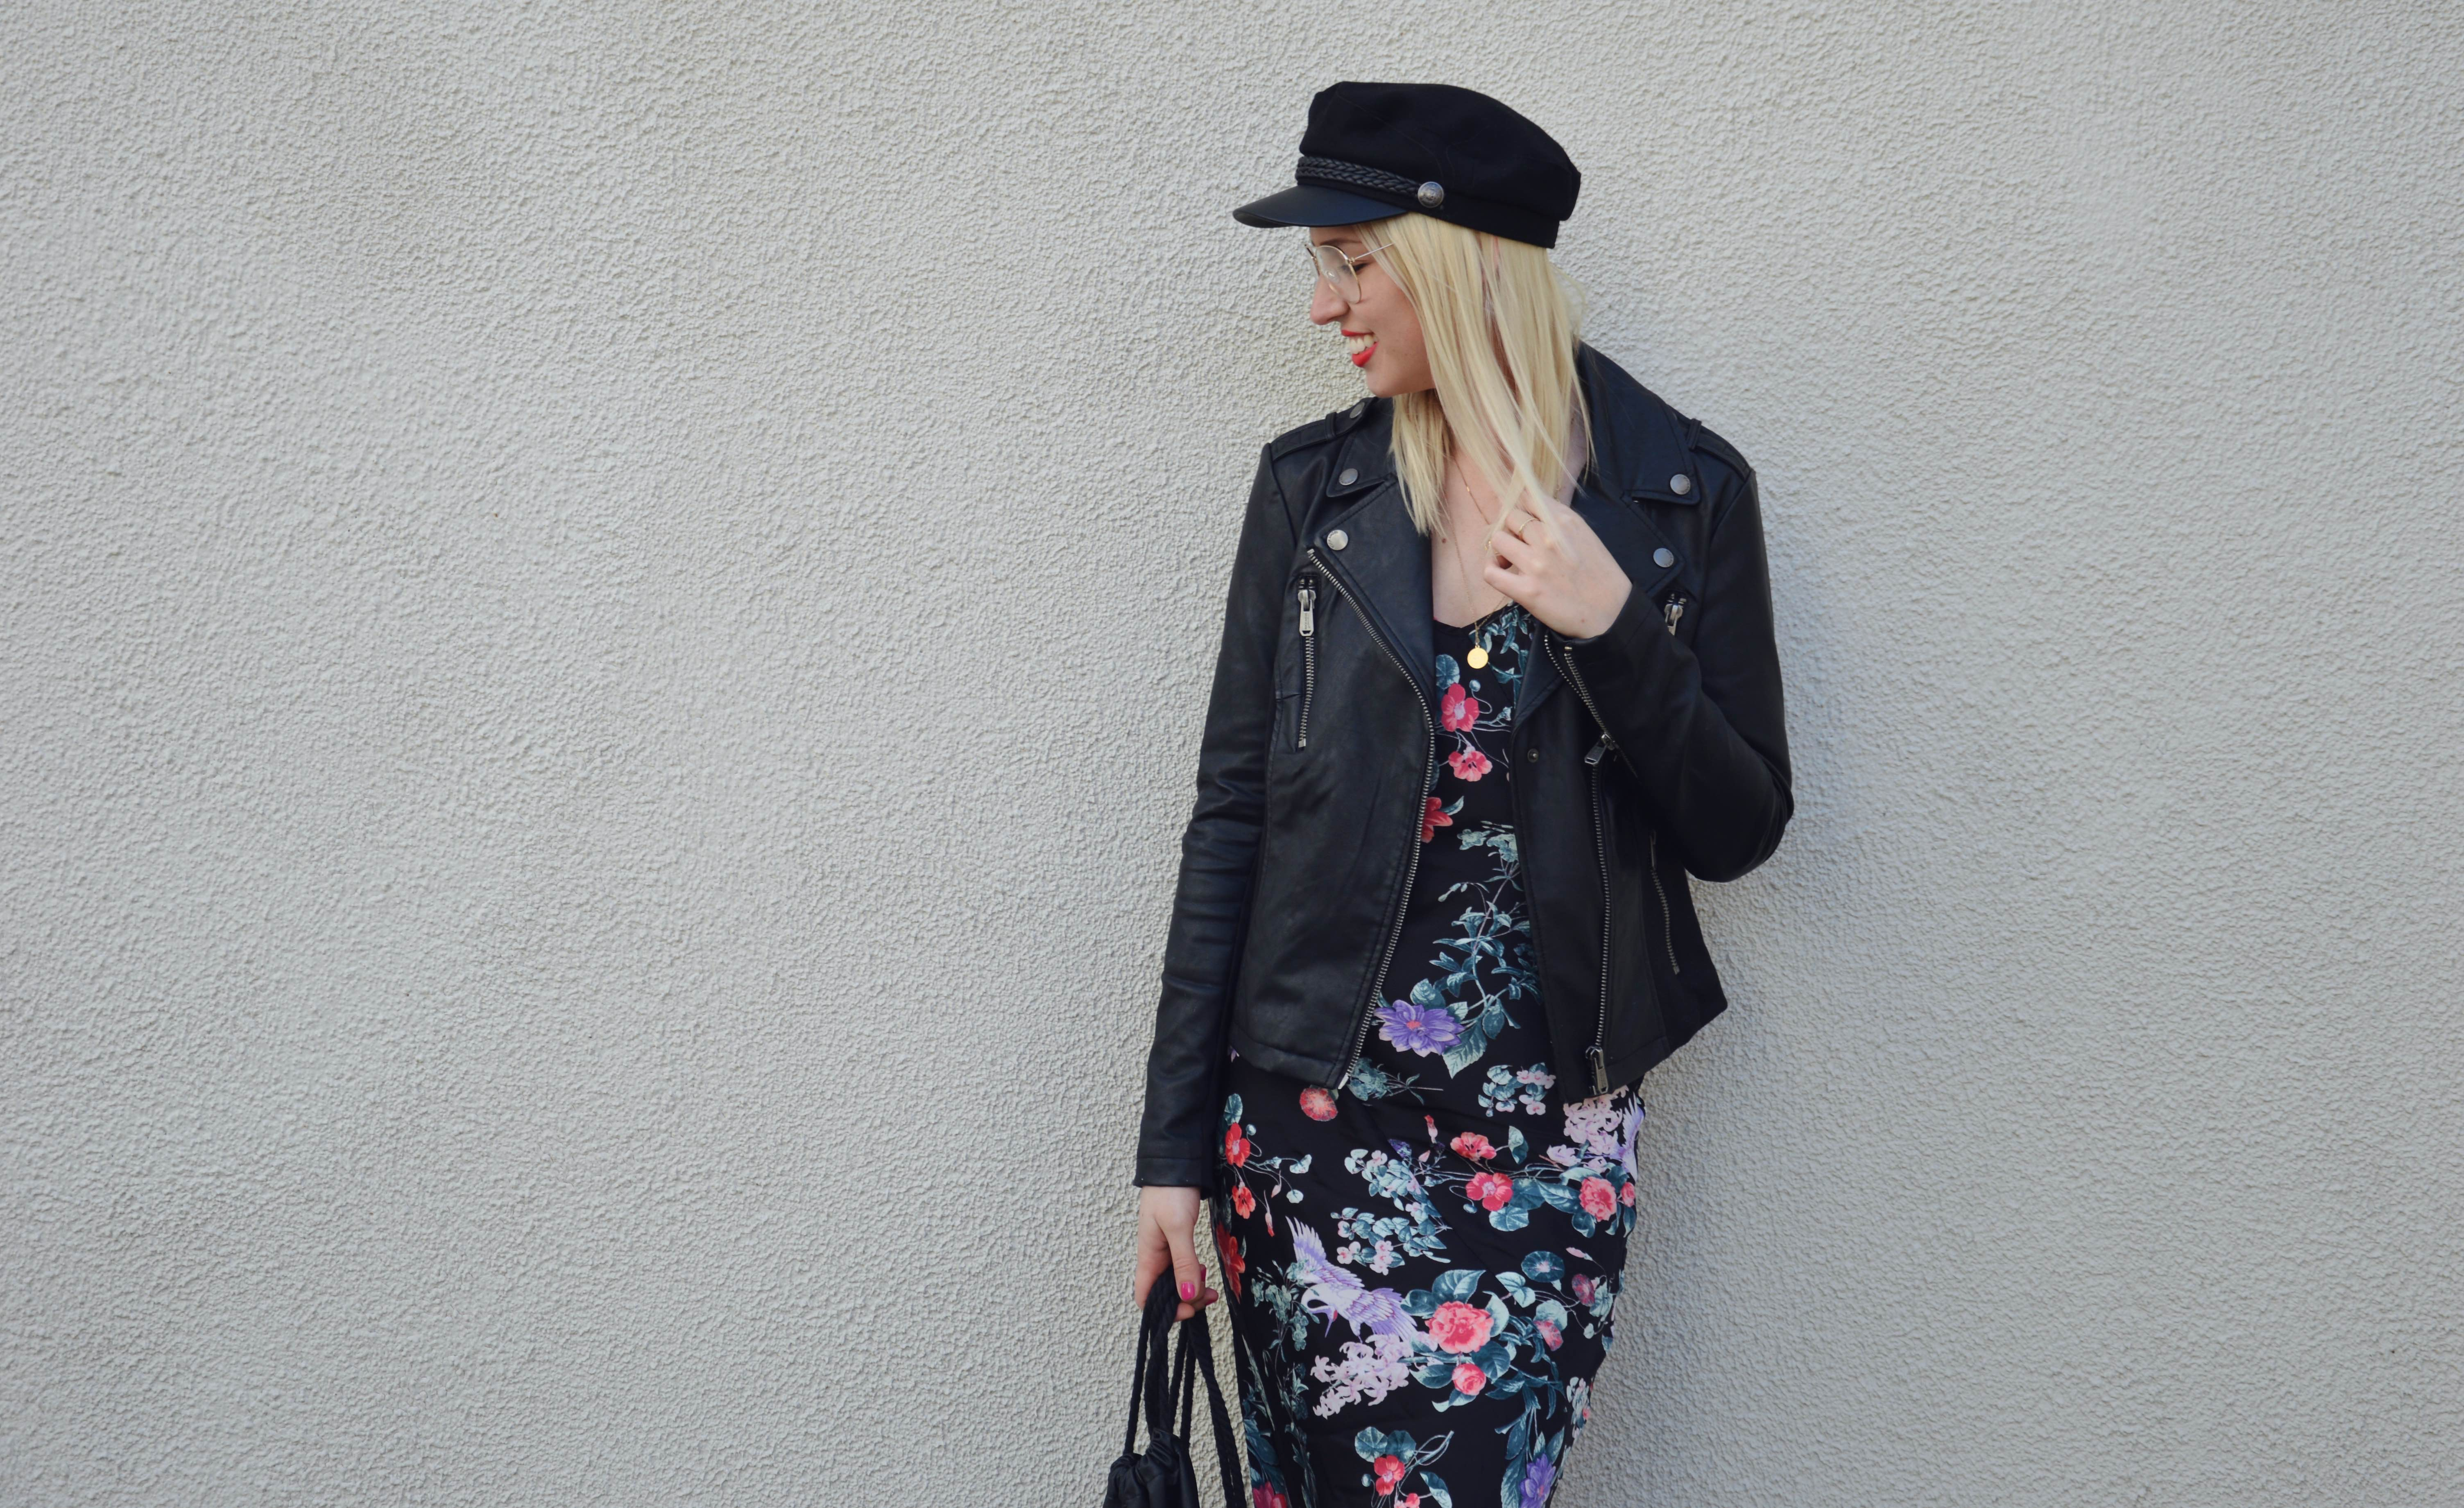 Flowerdress and Bikerjacket8